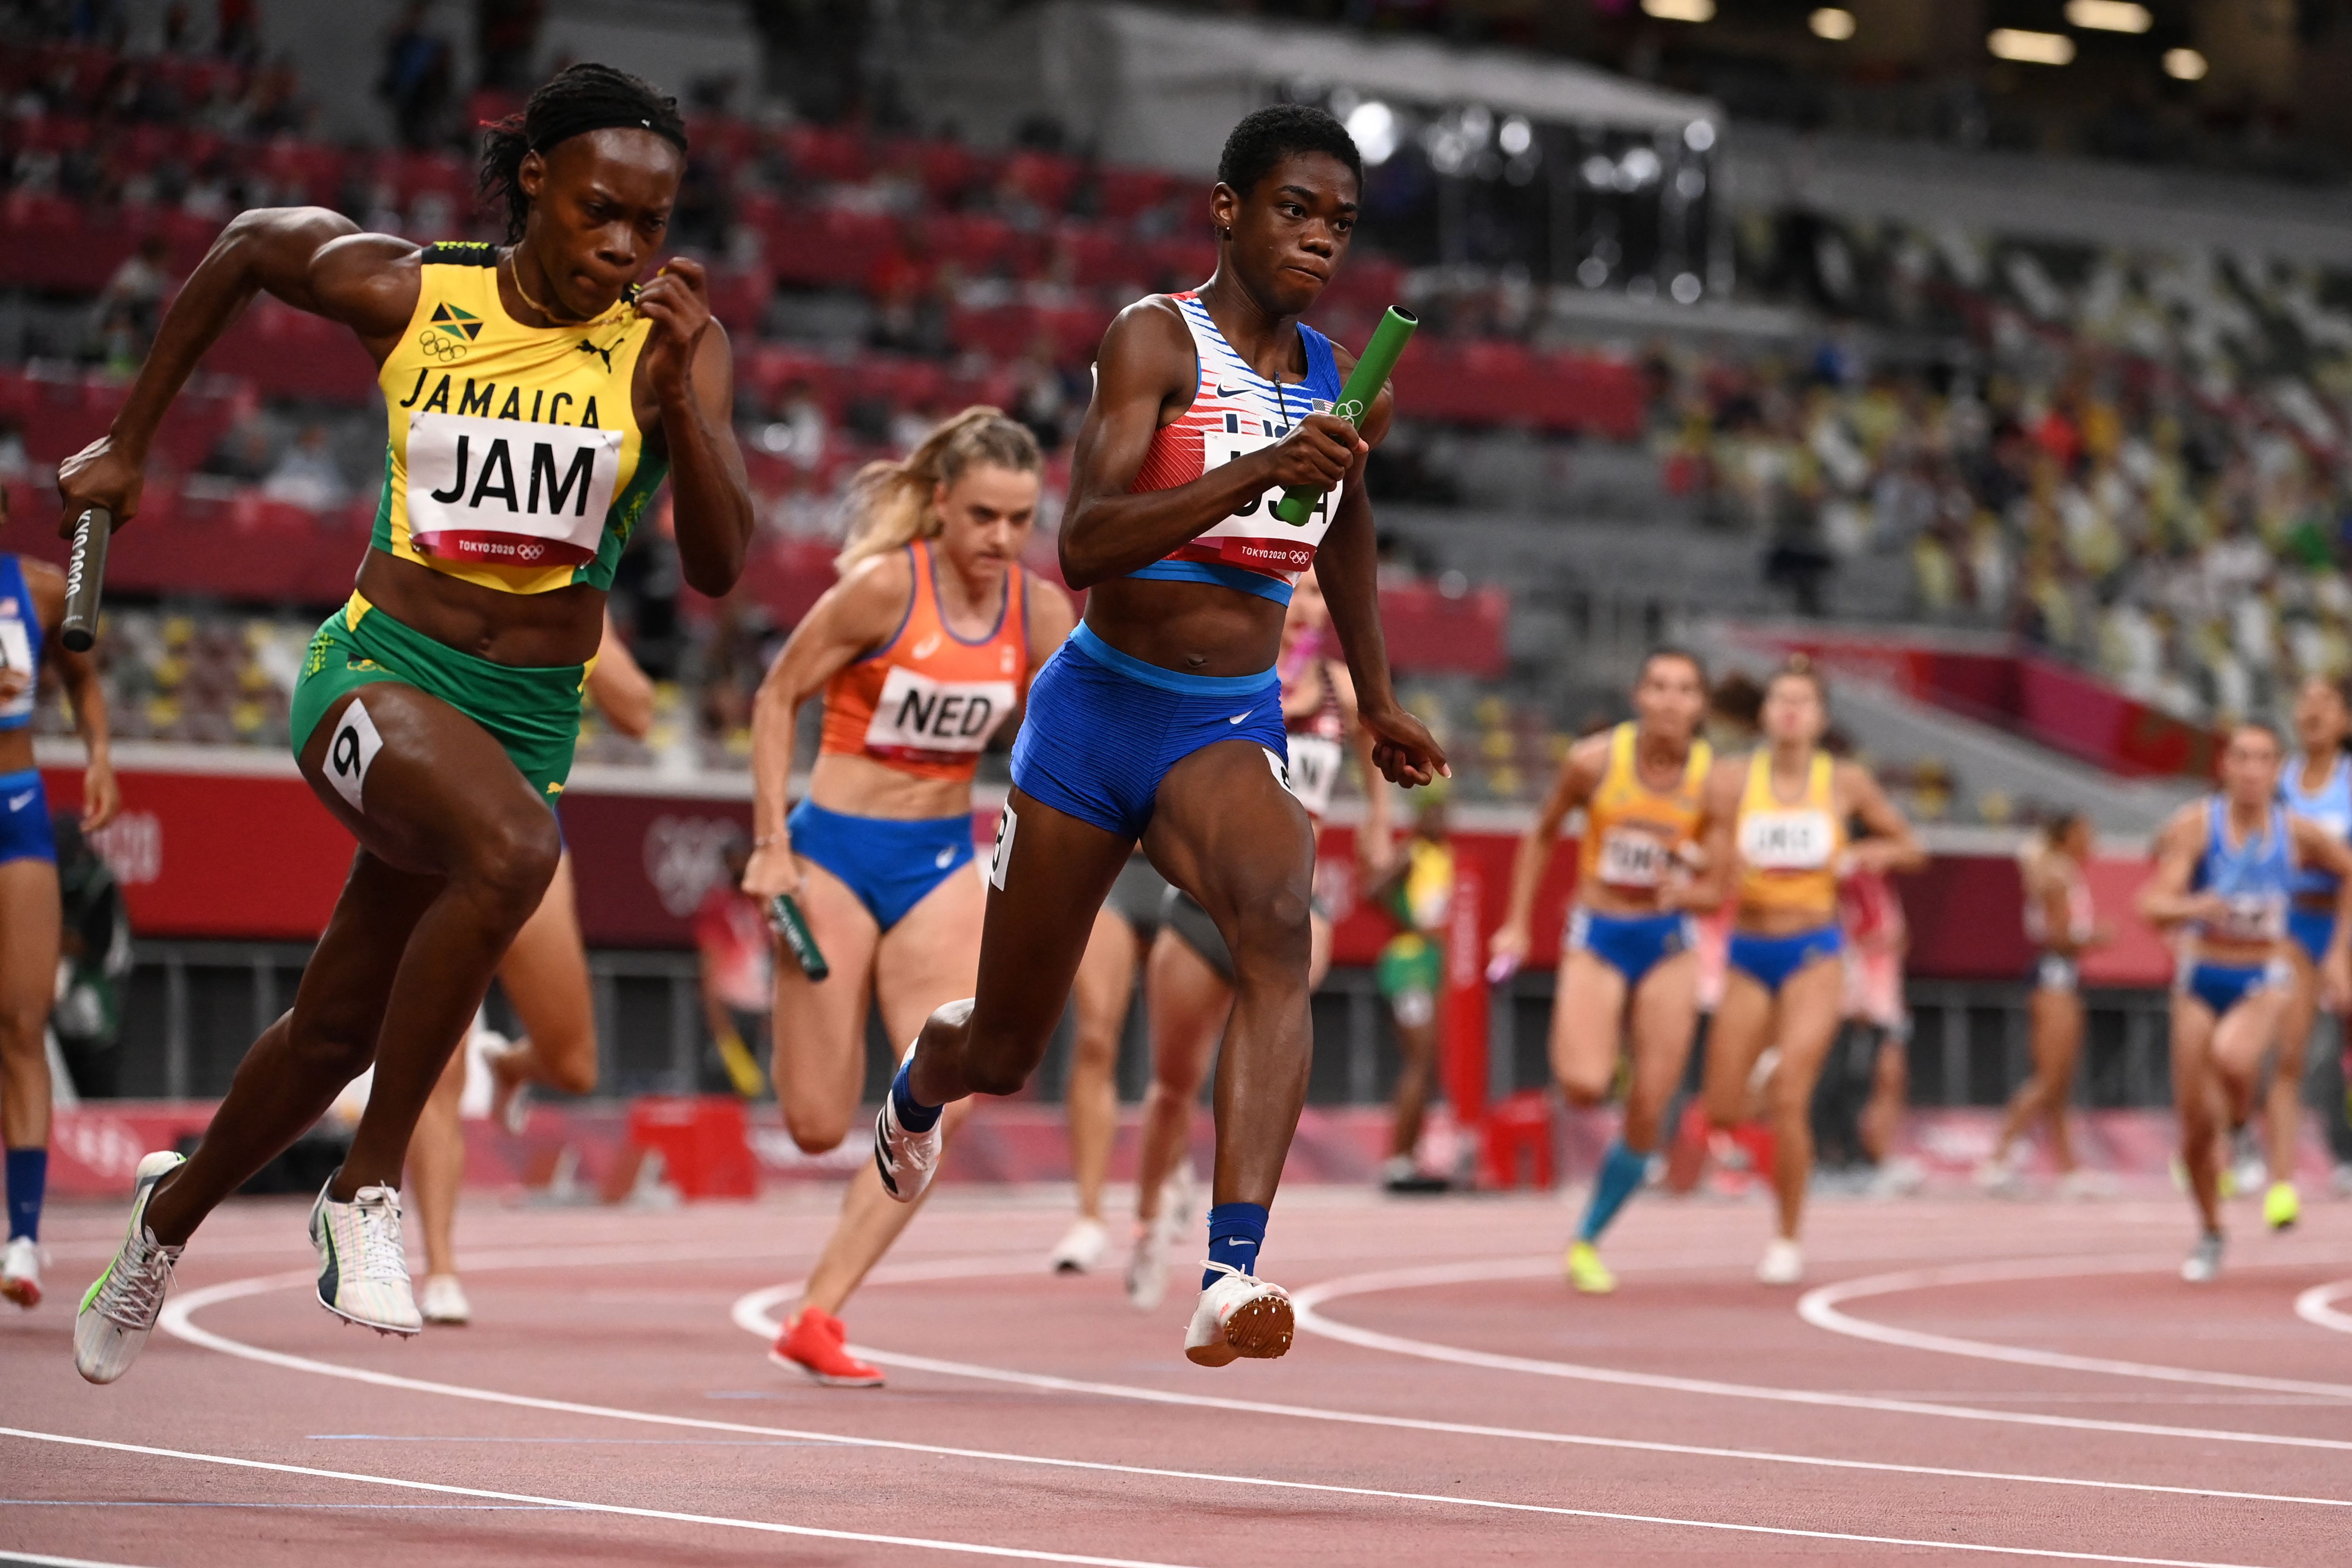 Jamaica's Roneisha McGregor (L) and USA's Wadeline Jonathas compete in the women's 4x100m relay heats during the Tokyo 2020 Olympic Games at the Olympic Stadium in Tokyo on August 5, 2021.